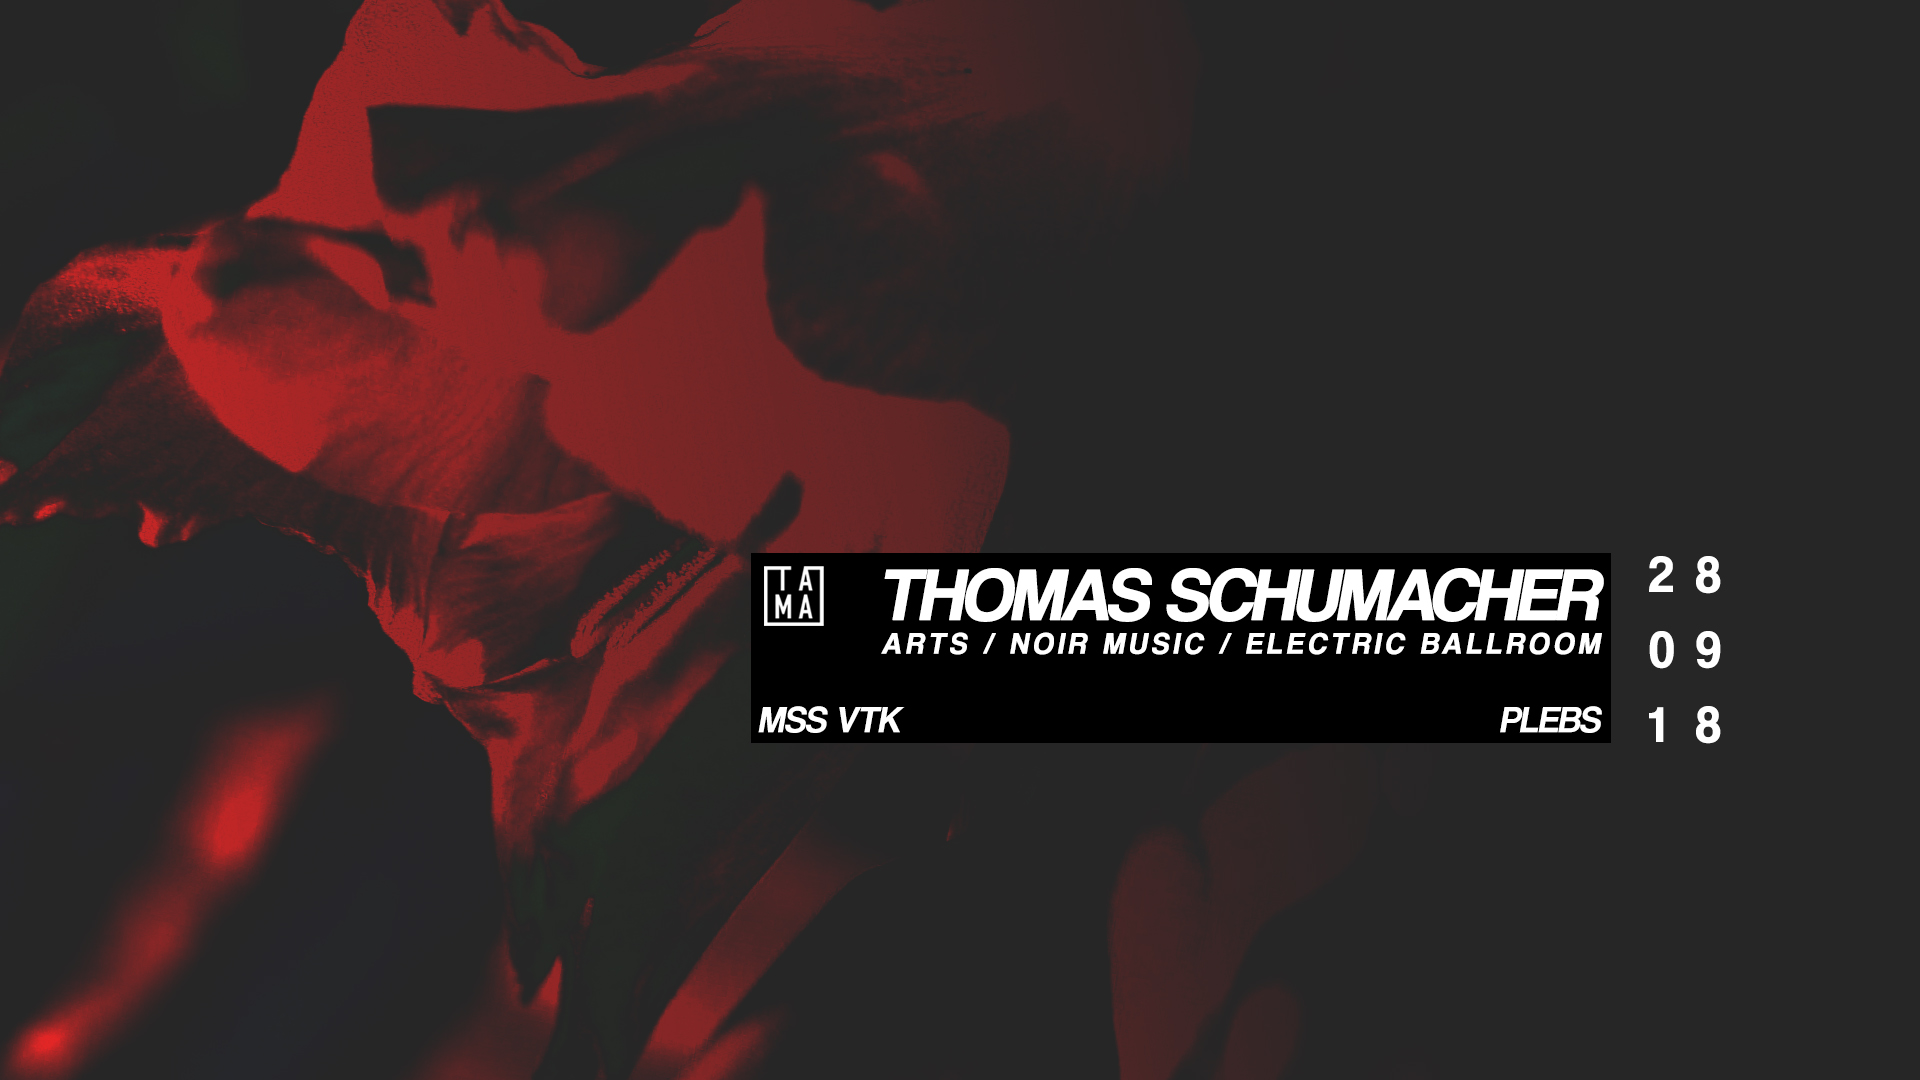 Thomas Schumacher / Mss Vtk / PLEBS